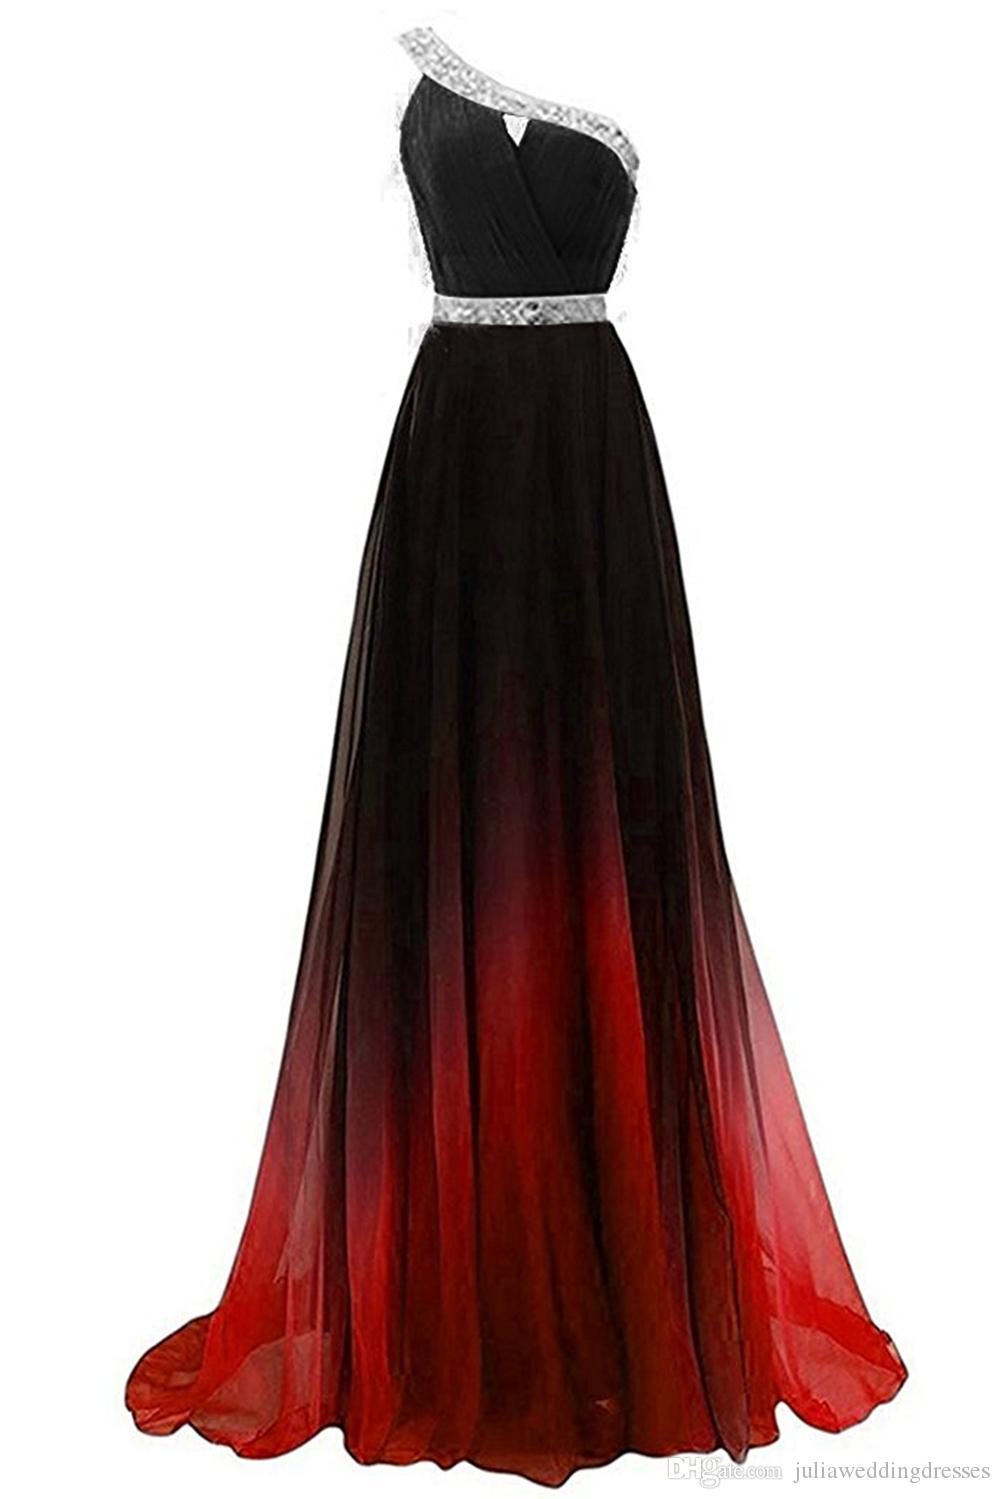 2021 Sexy One-Shoulder Long Gradient Evening Prom Dresses Chiffon A Line Beaded Plus Size Floor-Length Ombre Formal Party Gown QC1246